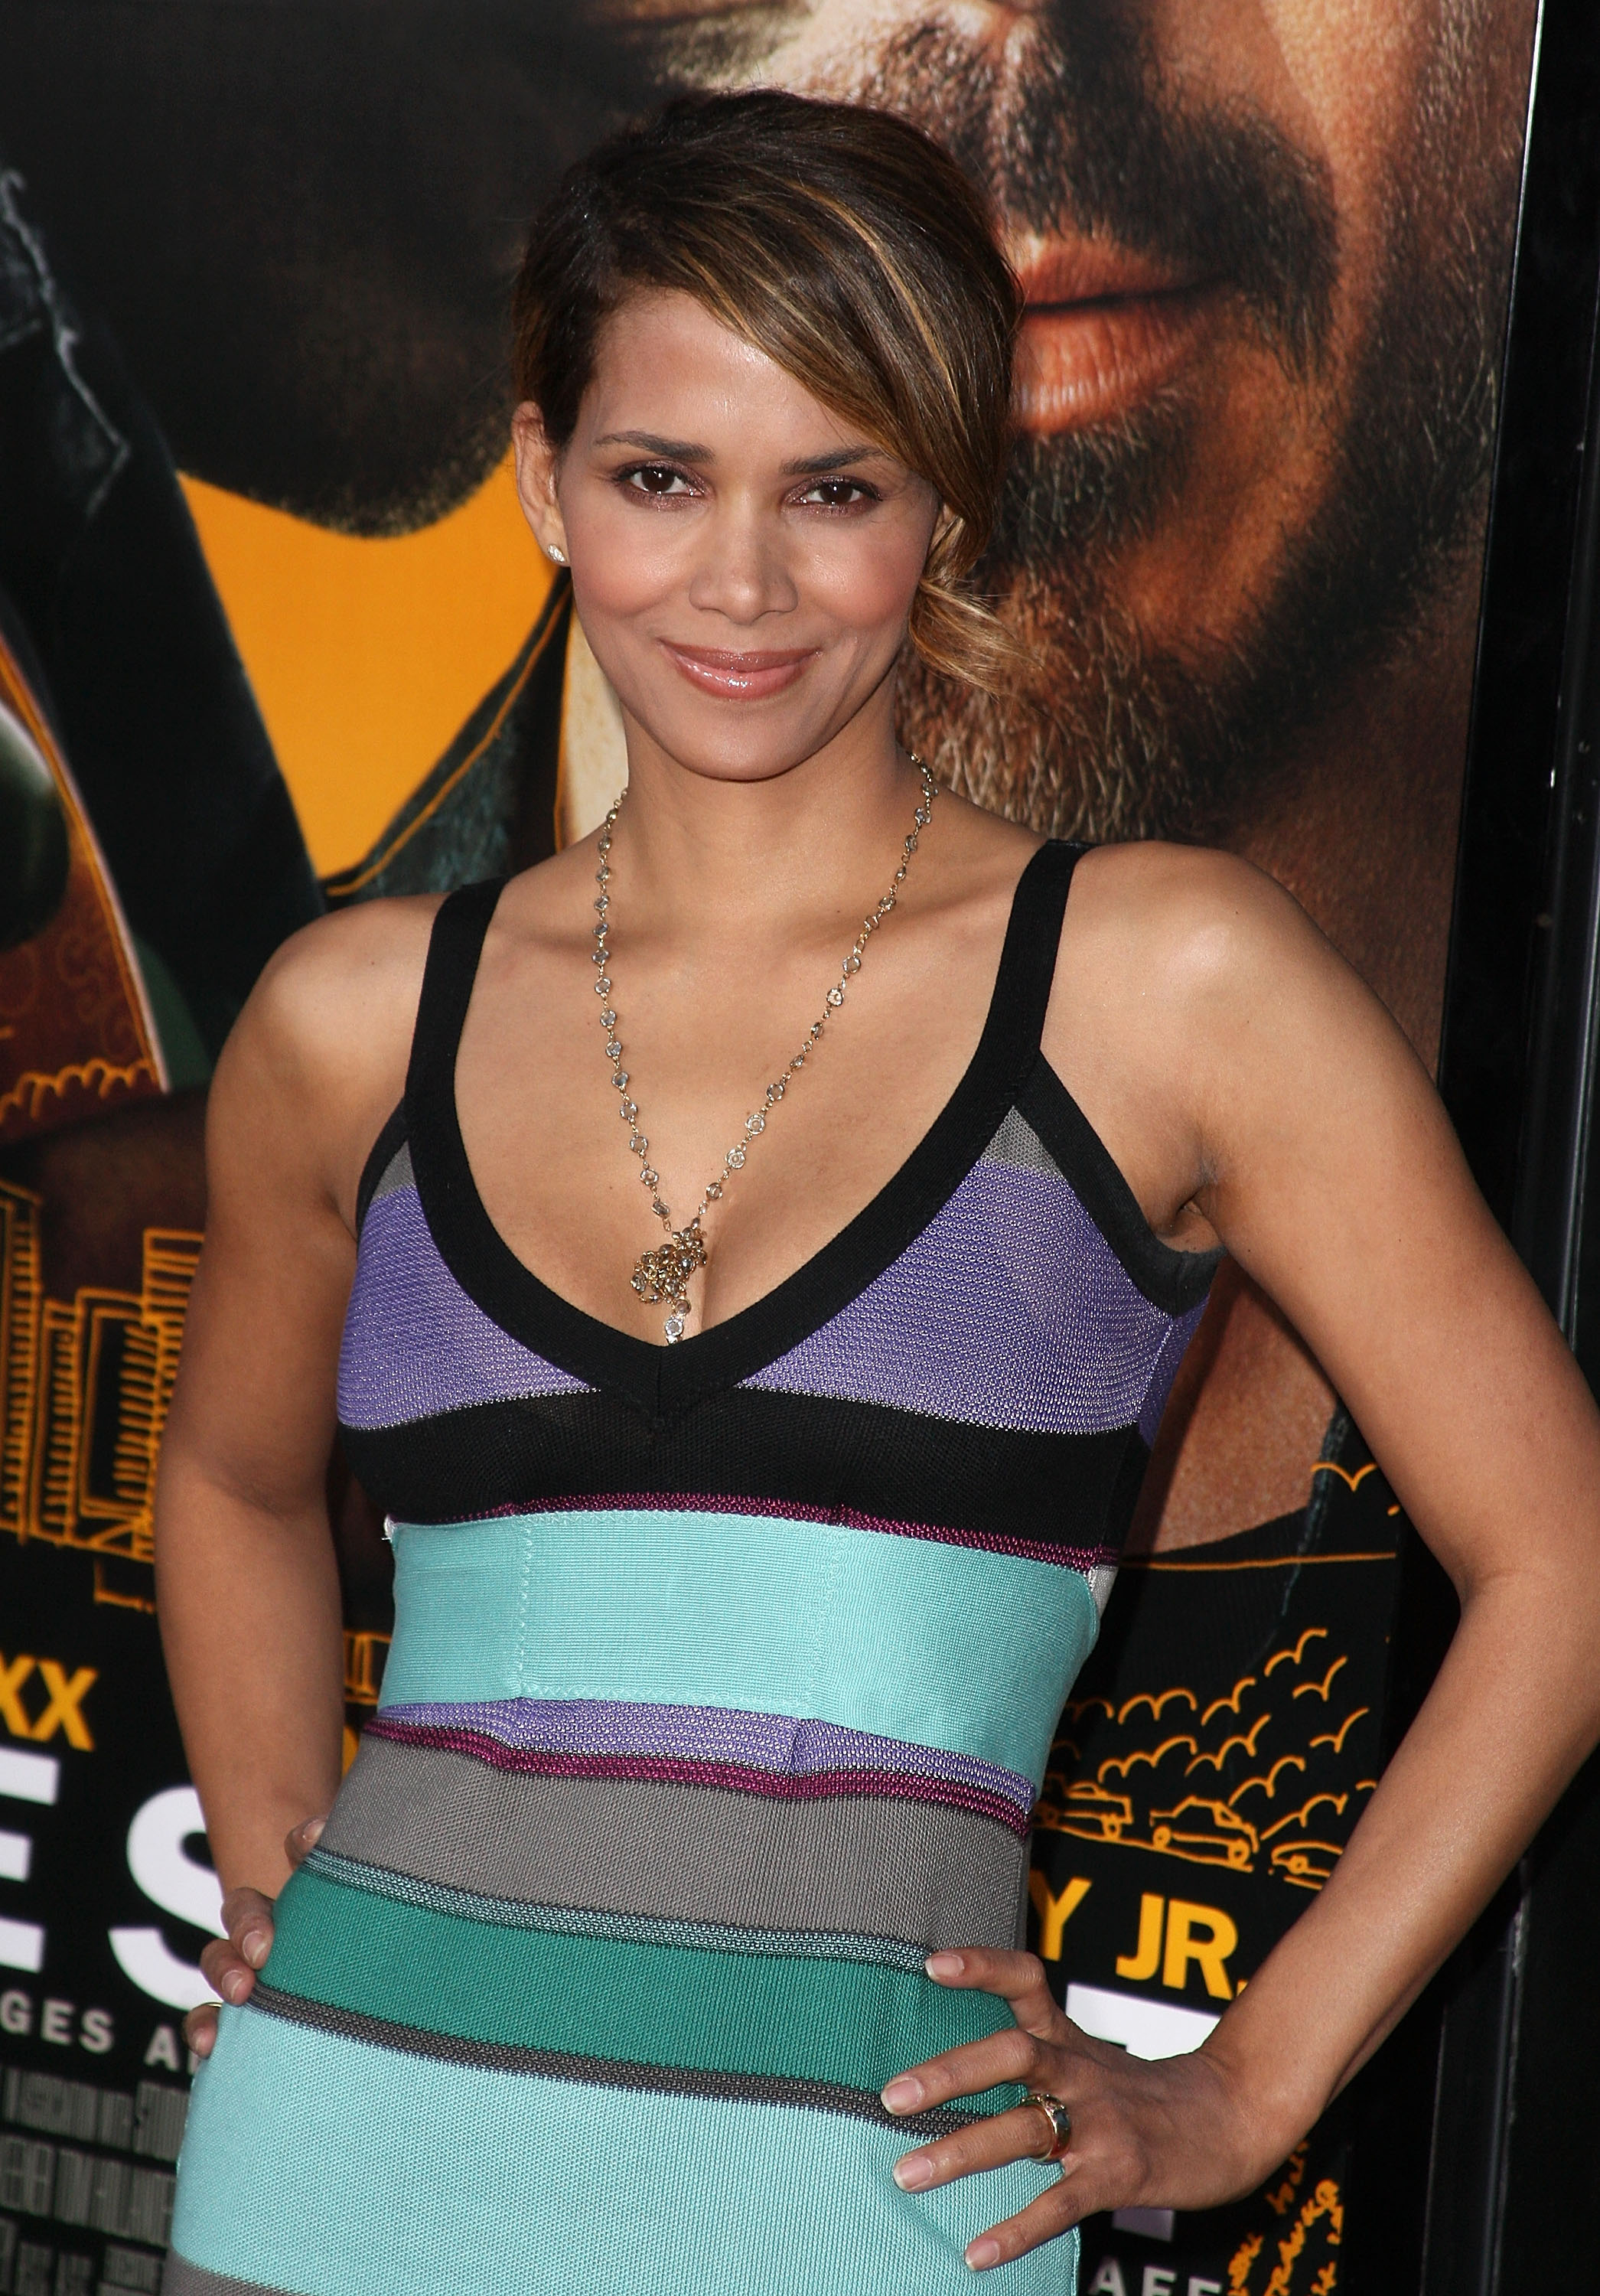 64090_Halle_Berry_The_Soloist_premiere_in_Los_Angeles_11_122_503lo.jpg